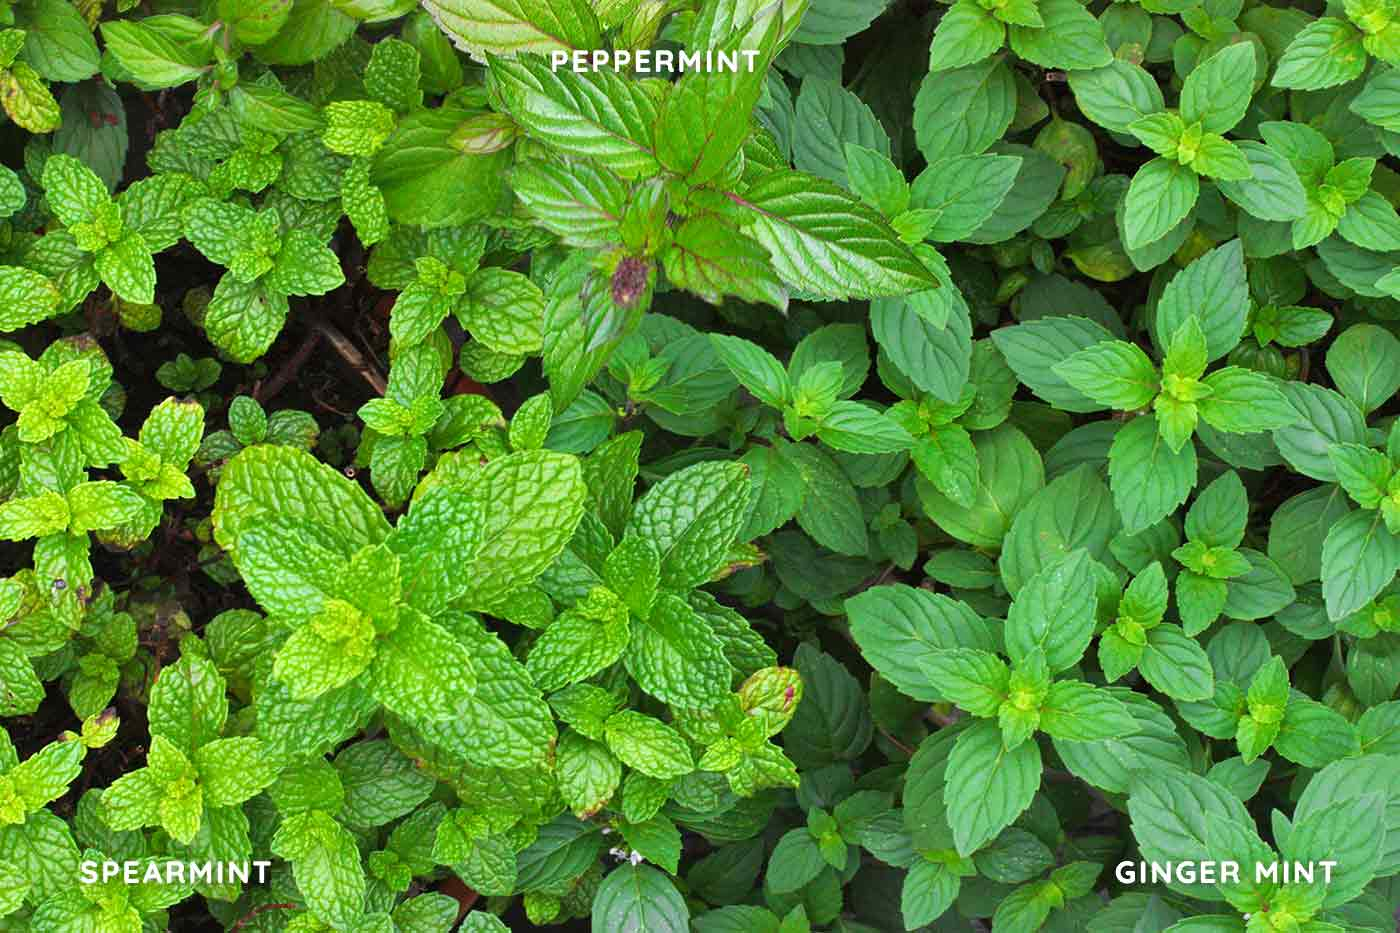 Varieties of mint